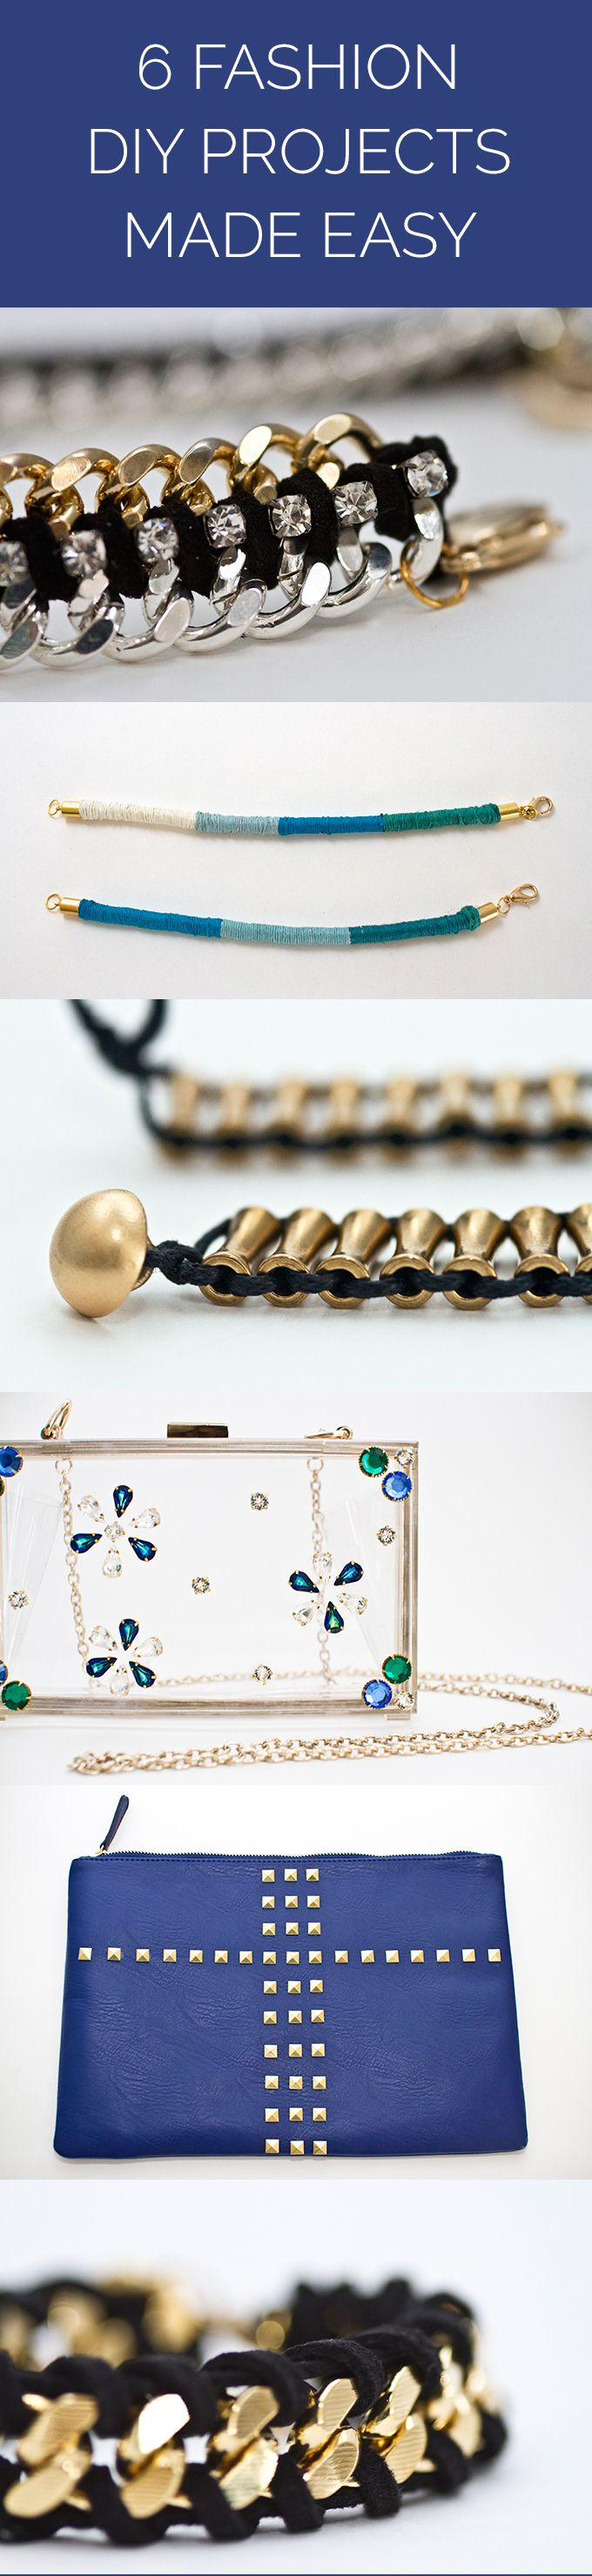 SALE ends today. Oh what fun it is to make jewelry.  Find those kits on SALE...#Darbysmart has it. Promocode: my2014 to save 50% on these kits through 1/2/2014